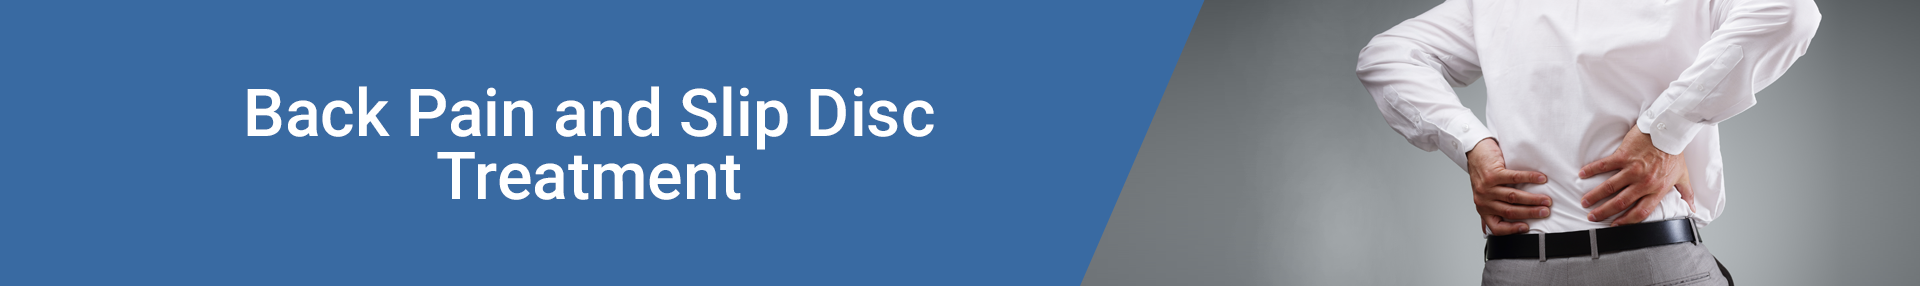 Back Pain and Slip Disc Treatment Clinic